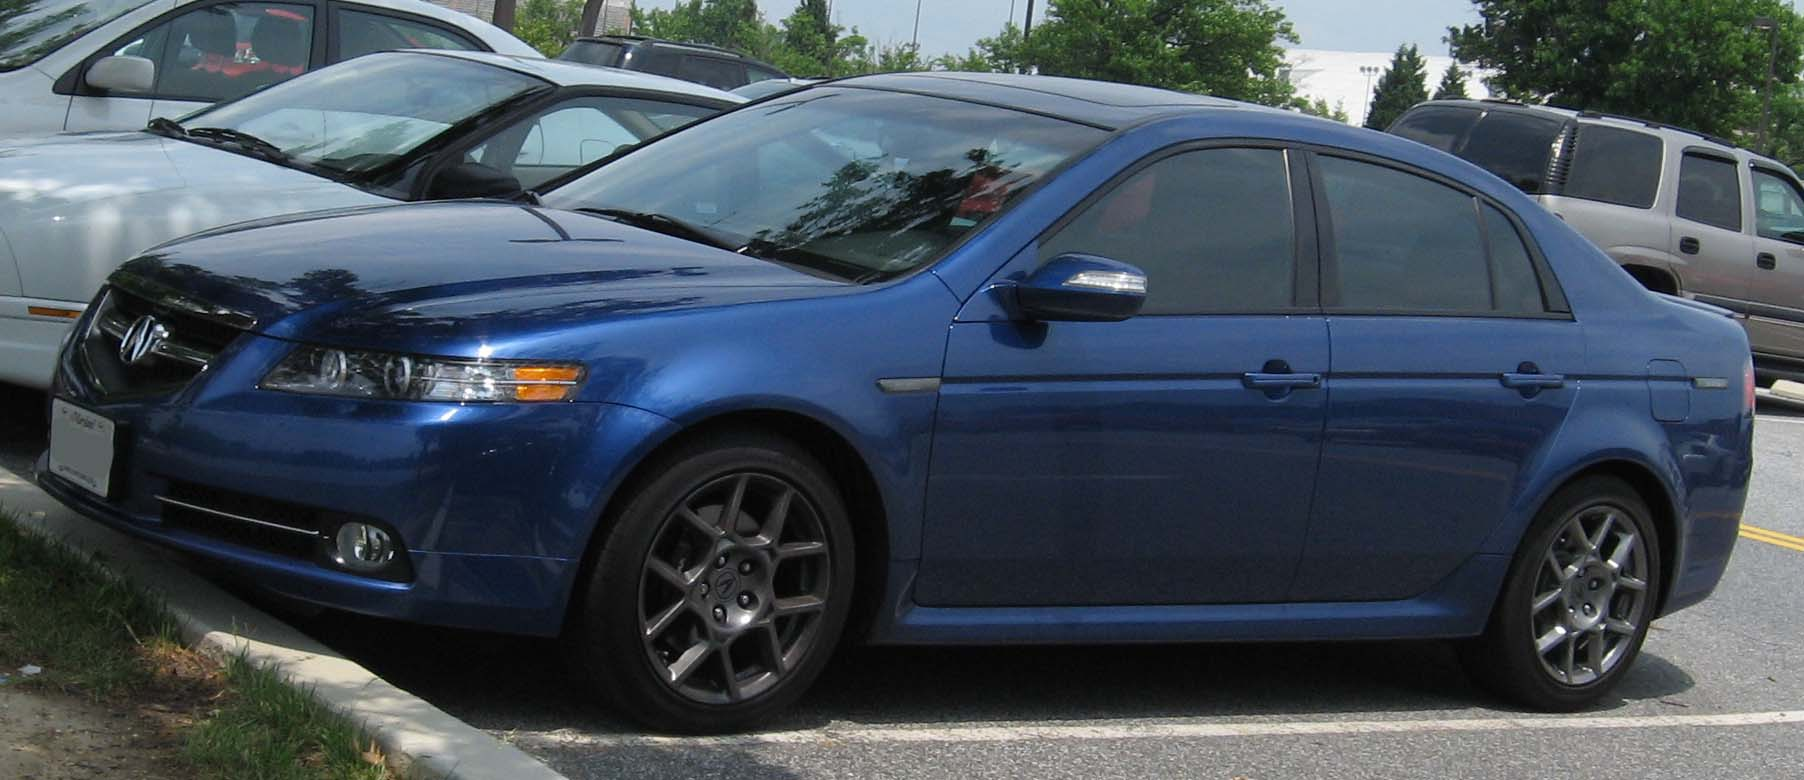 File:07-Acura-TL-S.jpg - Wikimedia Commons